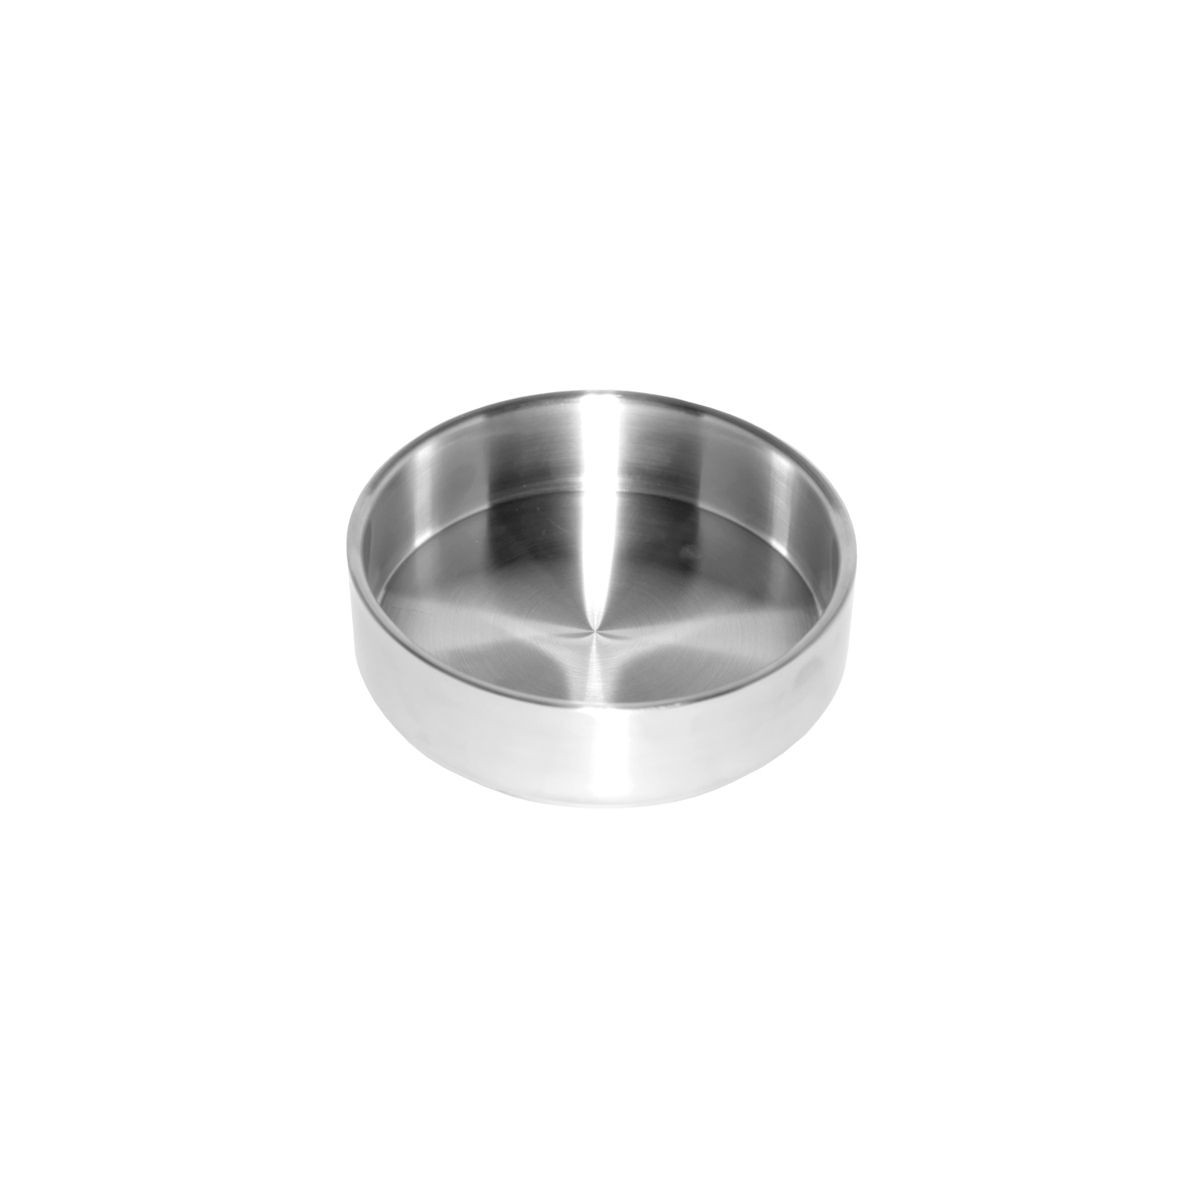 Service Ideas SB-45 SteelForme Double Wall Serving Bowl 2.3 Qt.